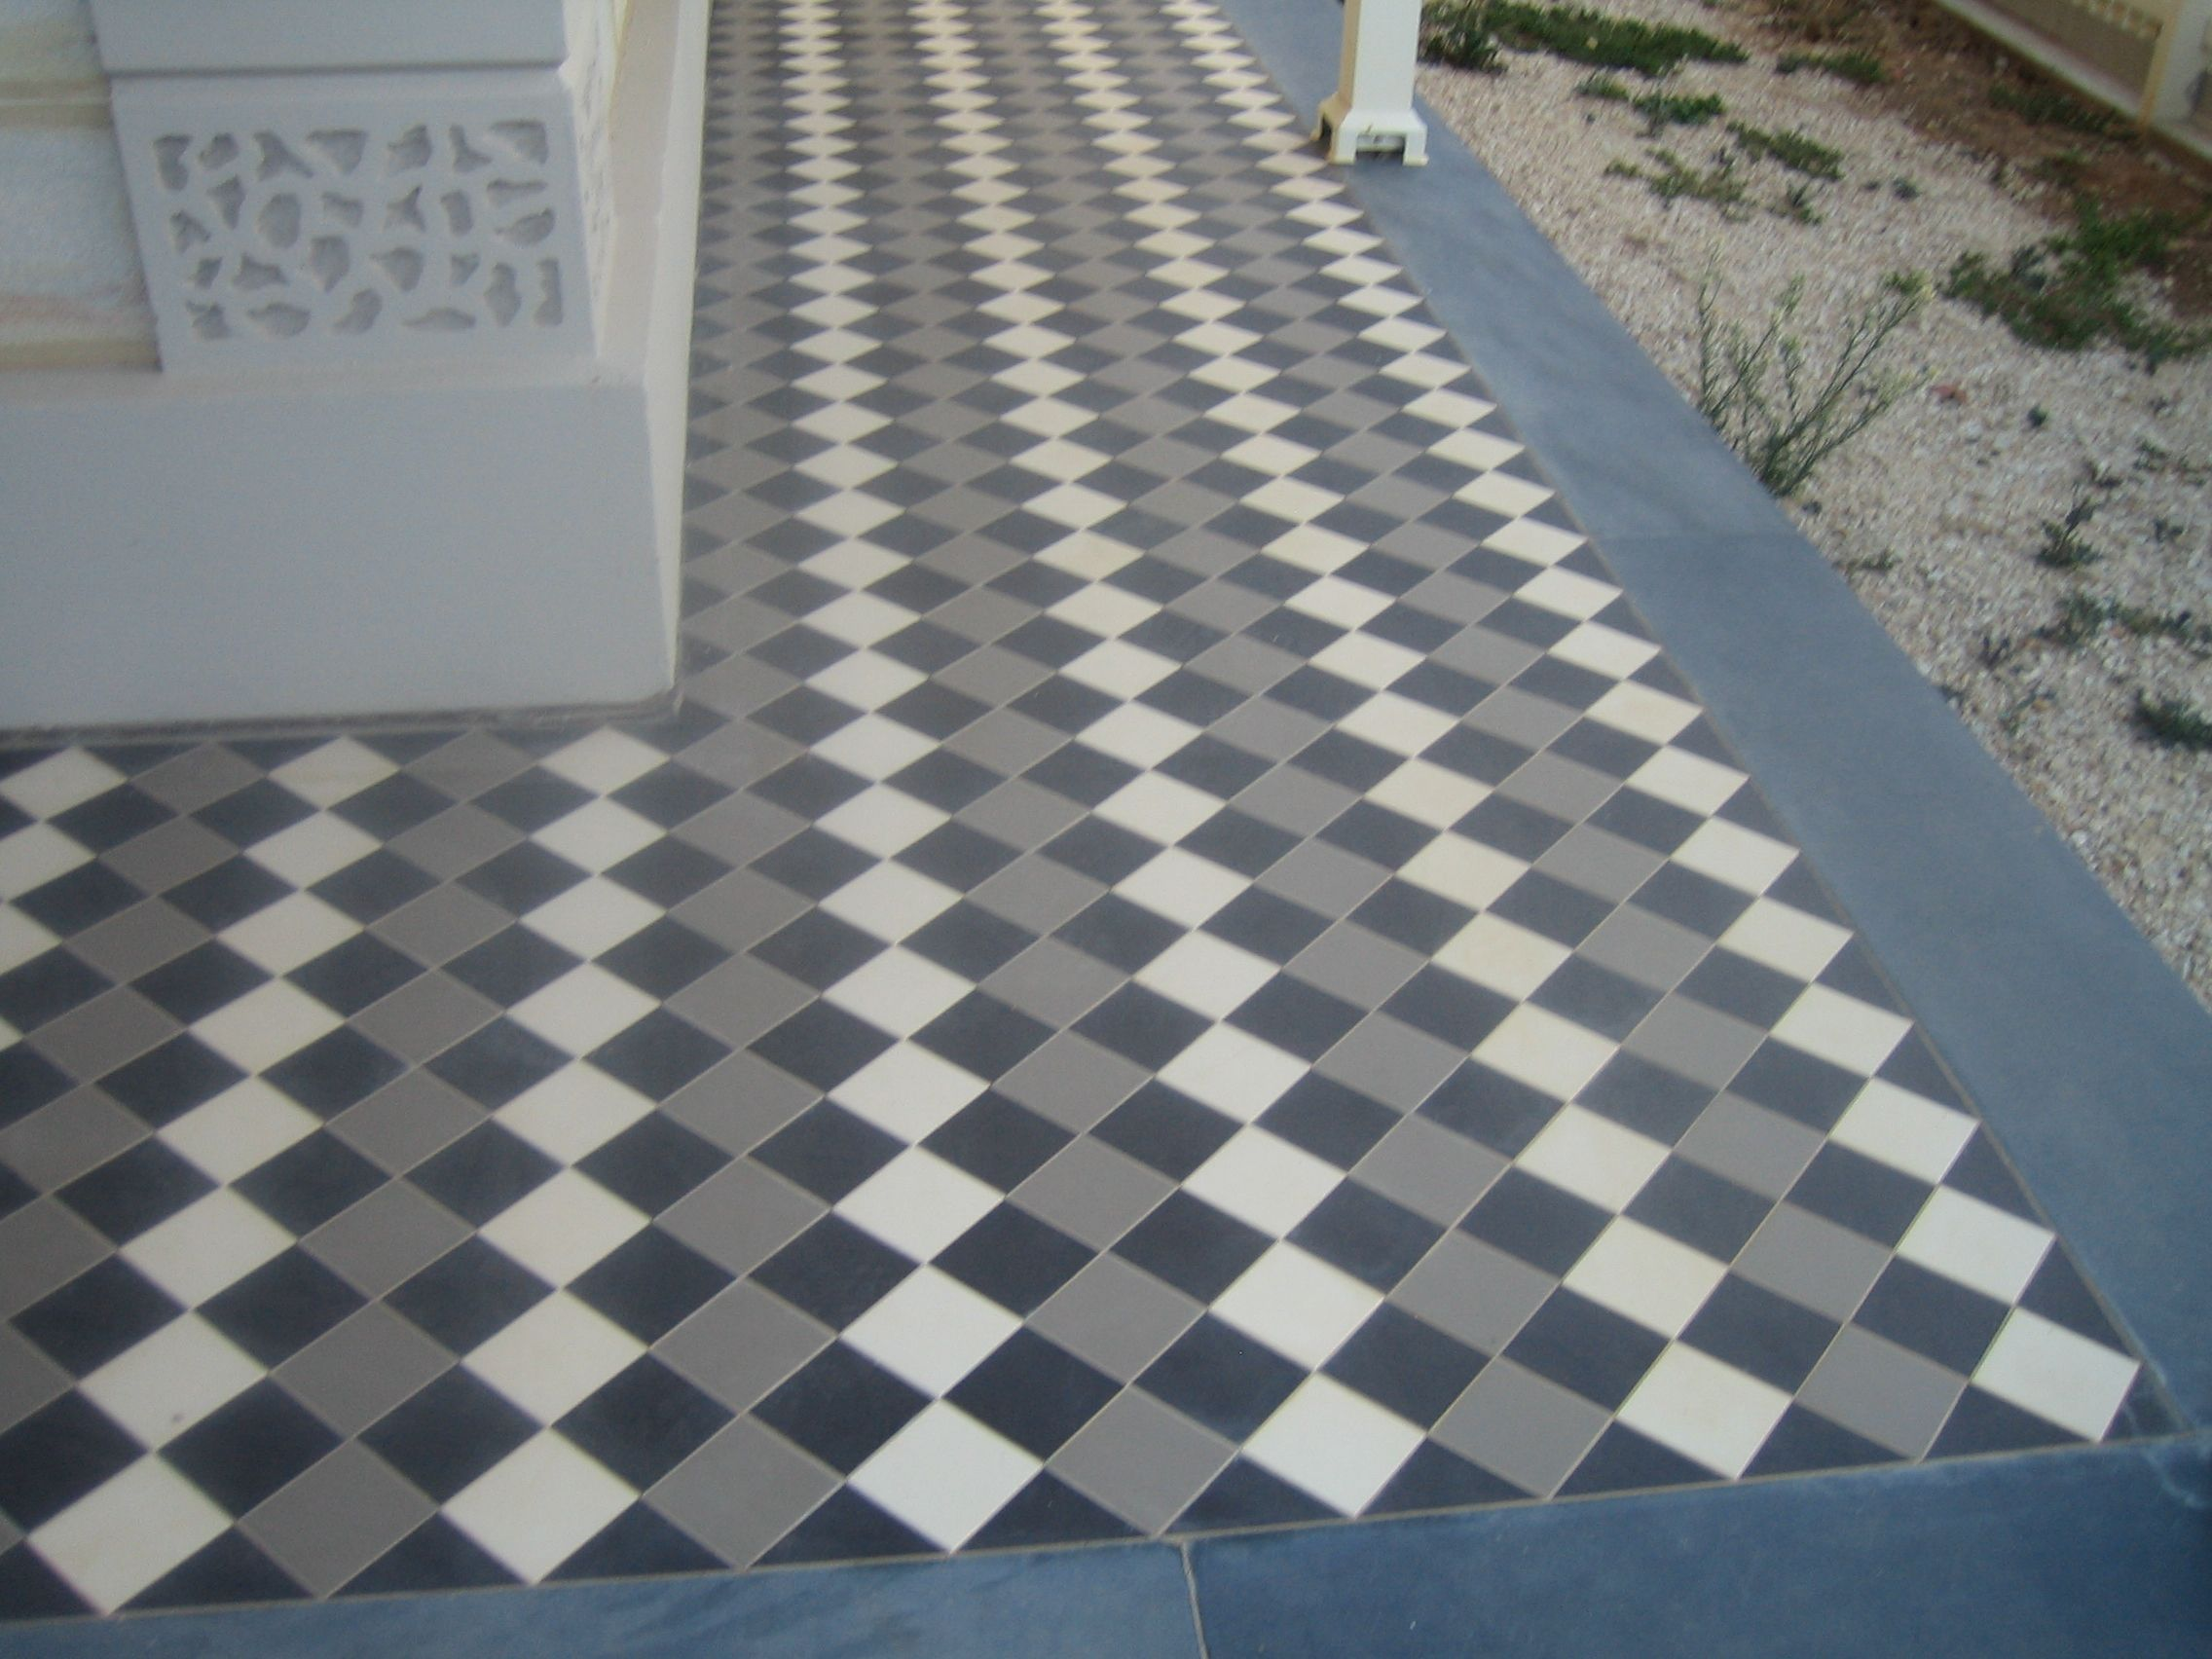 Tessellated Tiling And Flooring Specialising In Adelaide Image A